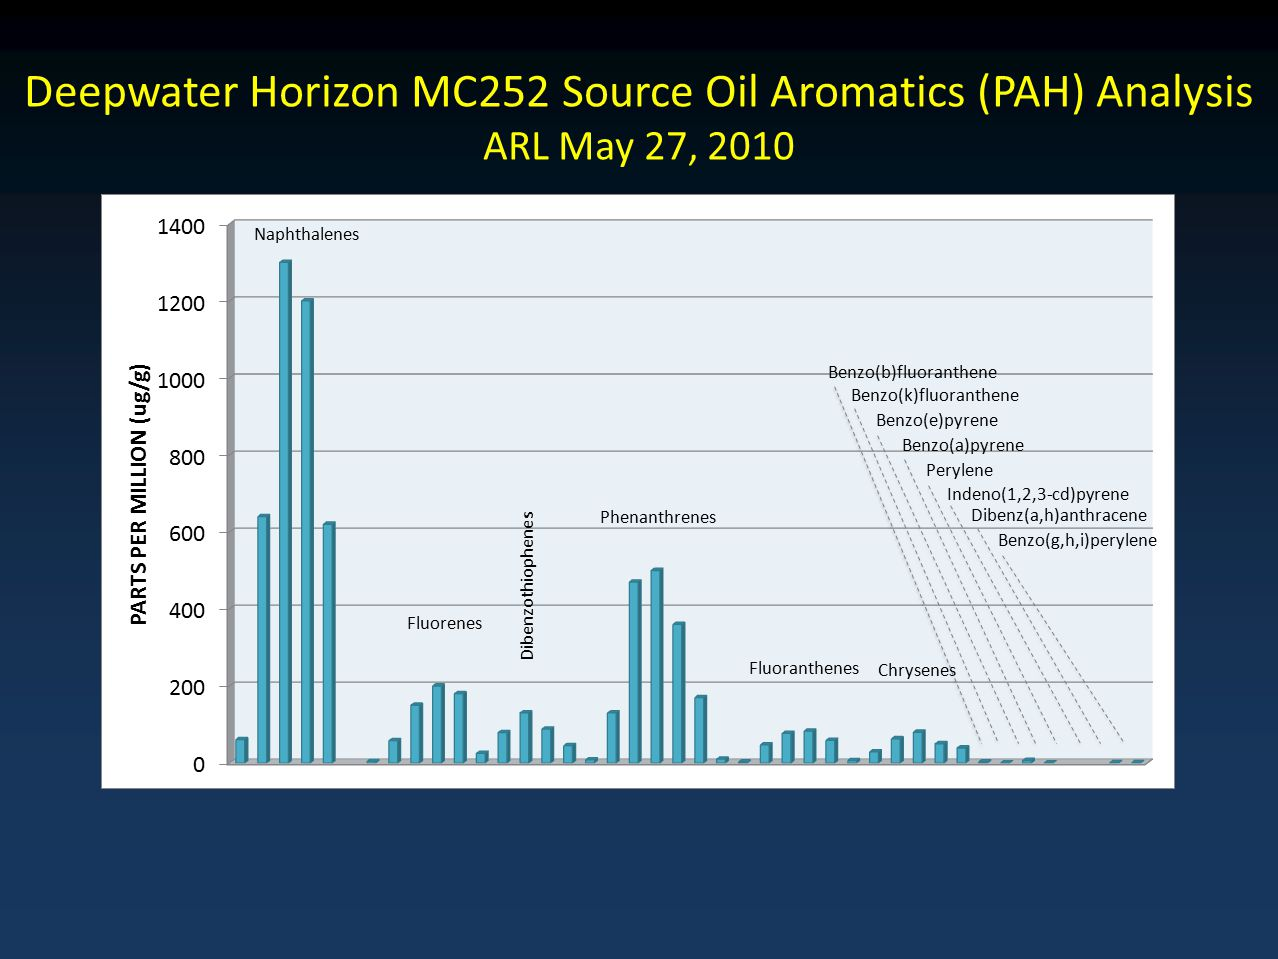 Deepwater Horizon MC252 Source Oil Aromatics (PAH) Analysis ARL May 27, 2010